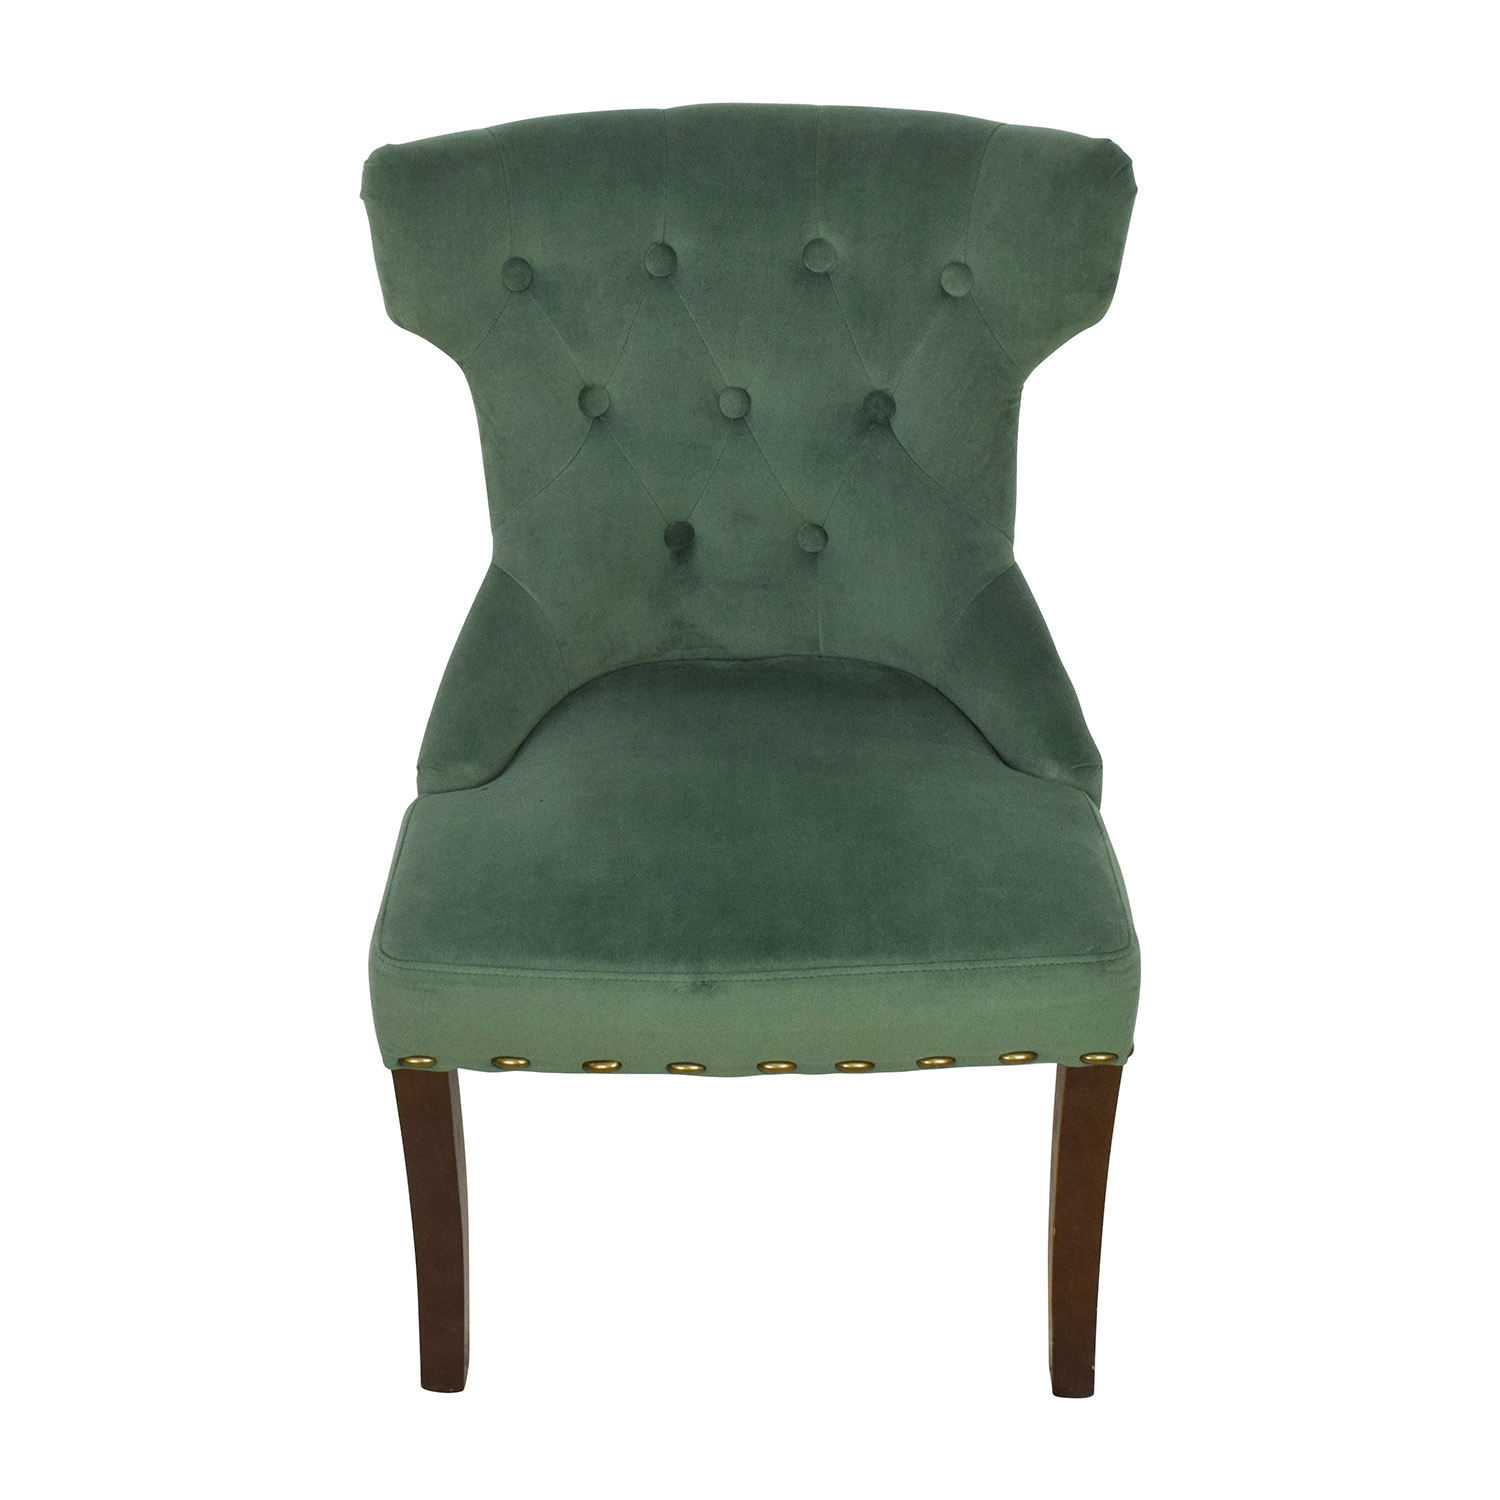 Pier 1 Imports Pier 1 Imports Hourglass Collection Chair green